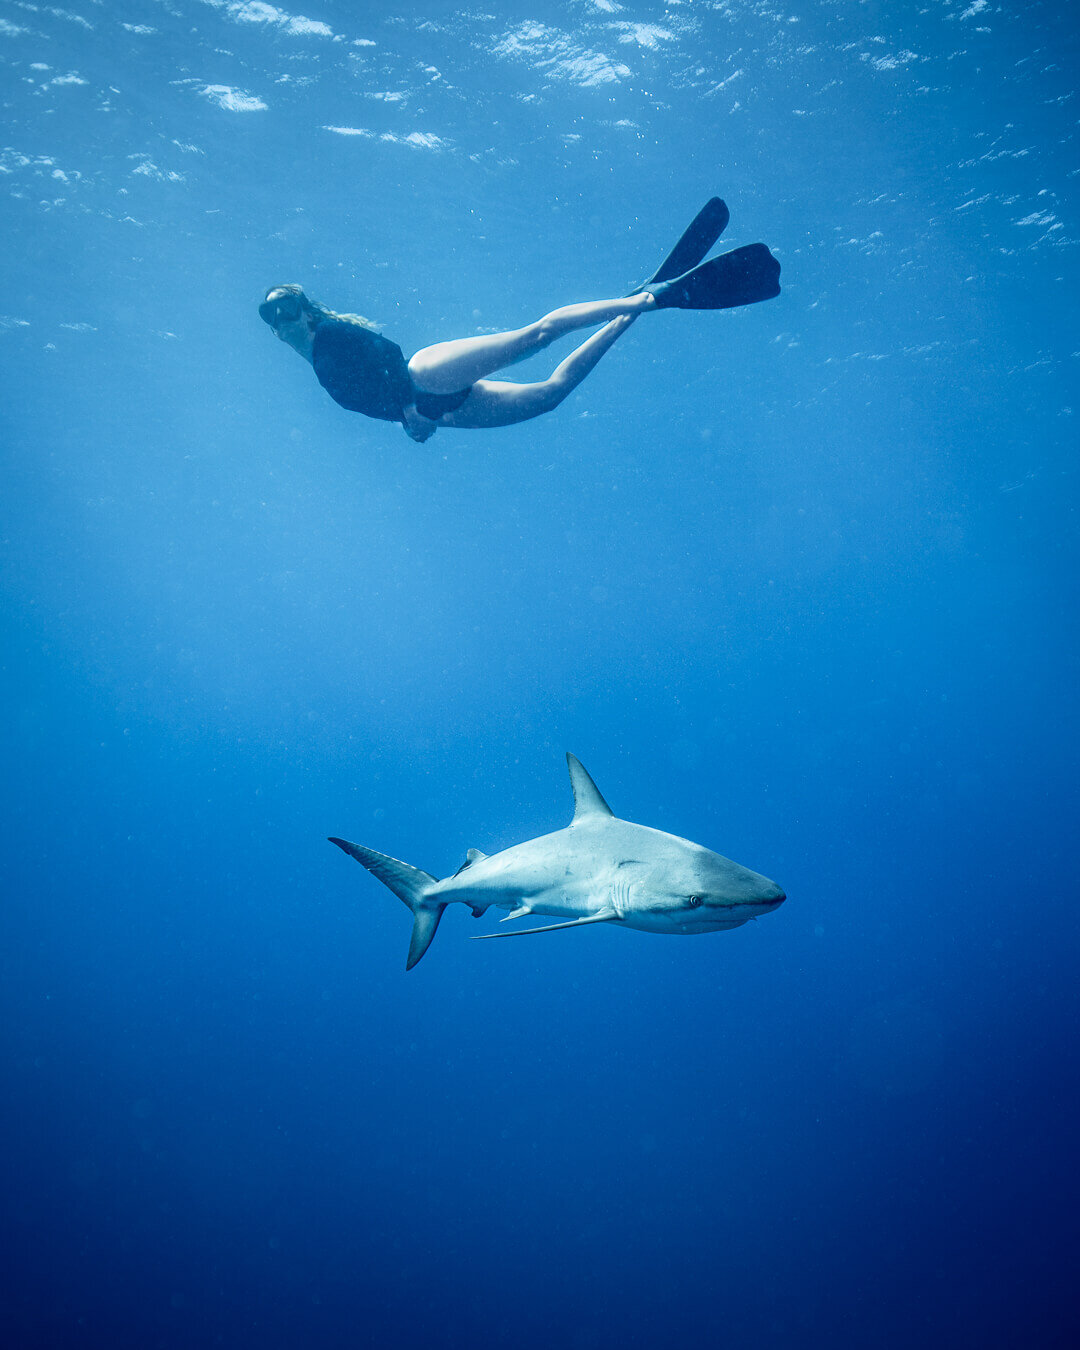 Danger Reef is a popular scuba diving location in the Exumas, known for its abundance of reef sharks. Photo by:  Matt Grondin .